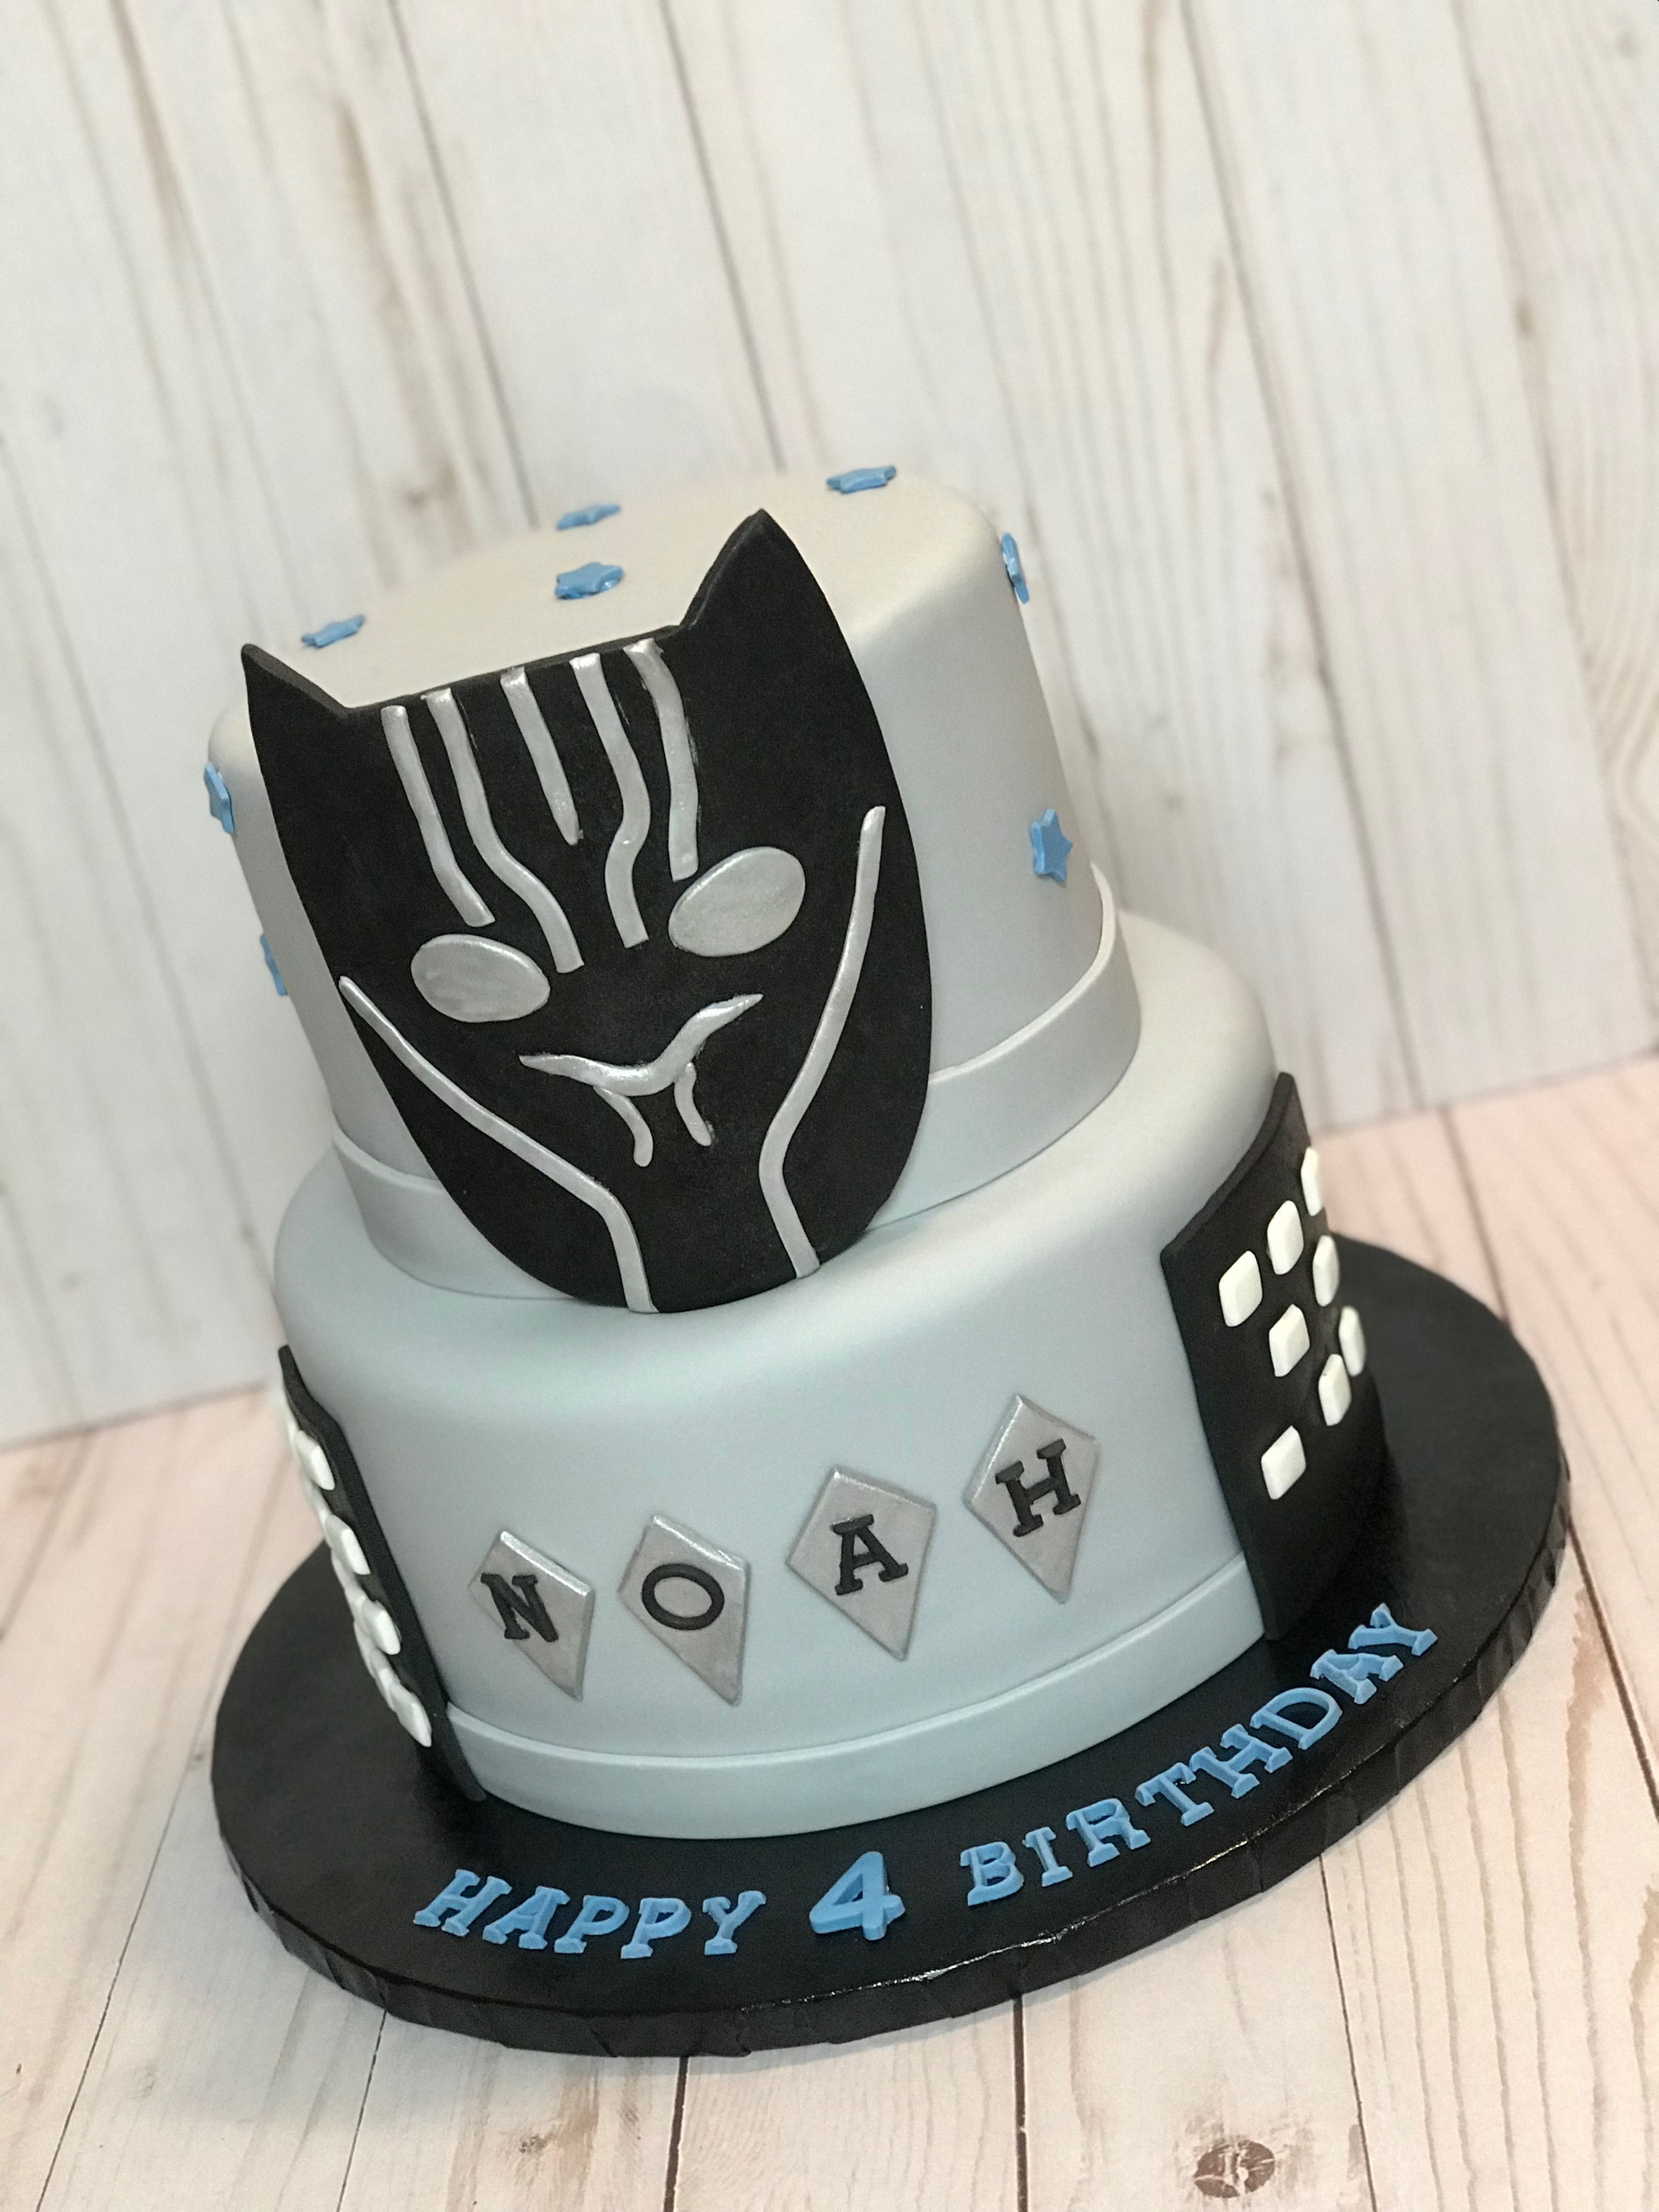 44++ Black panther cake decoration ideas in 2021